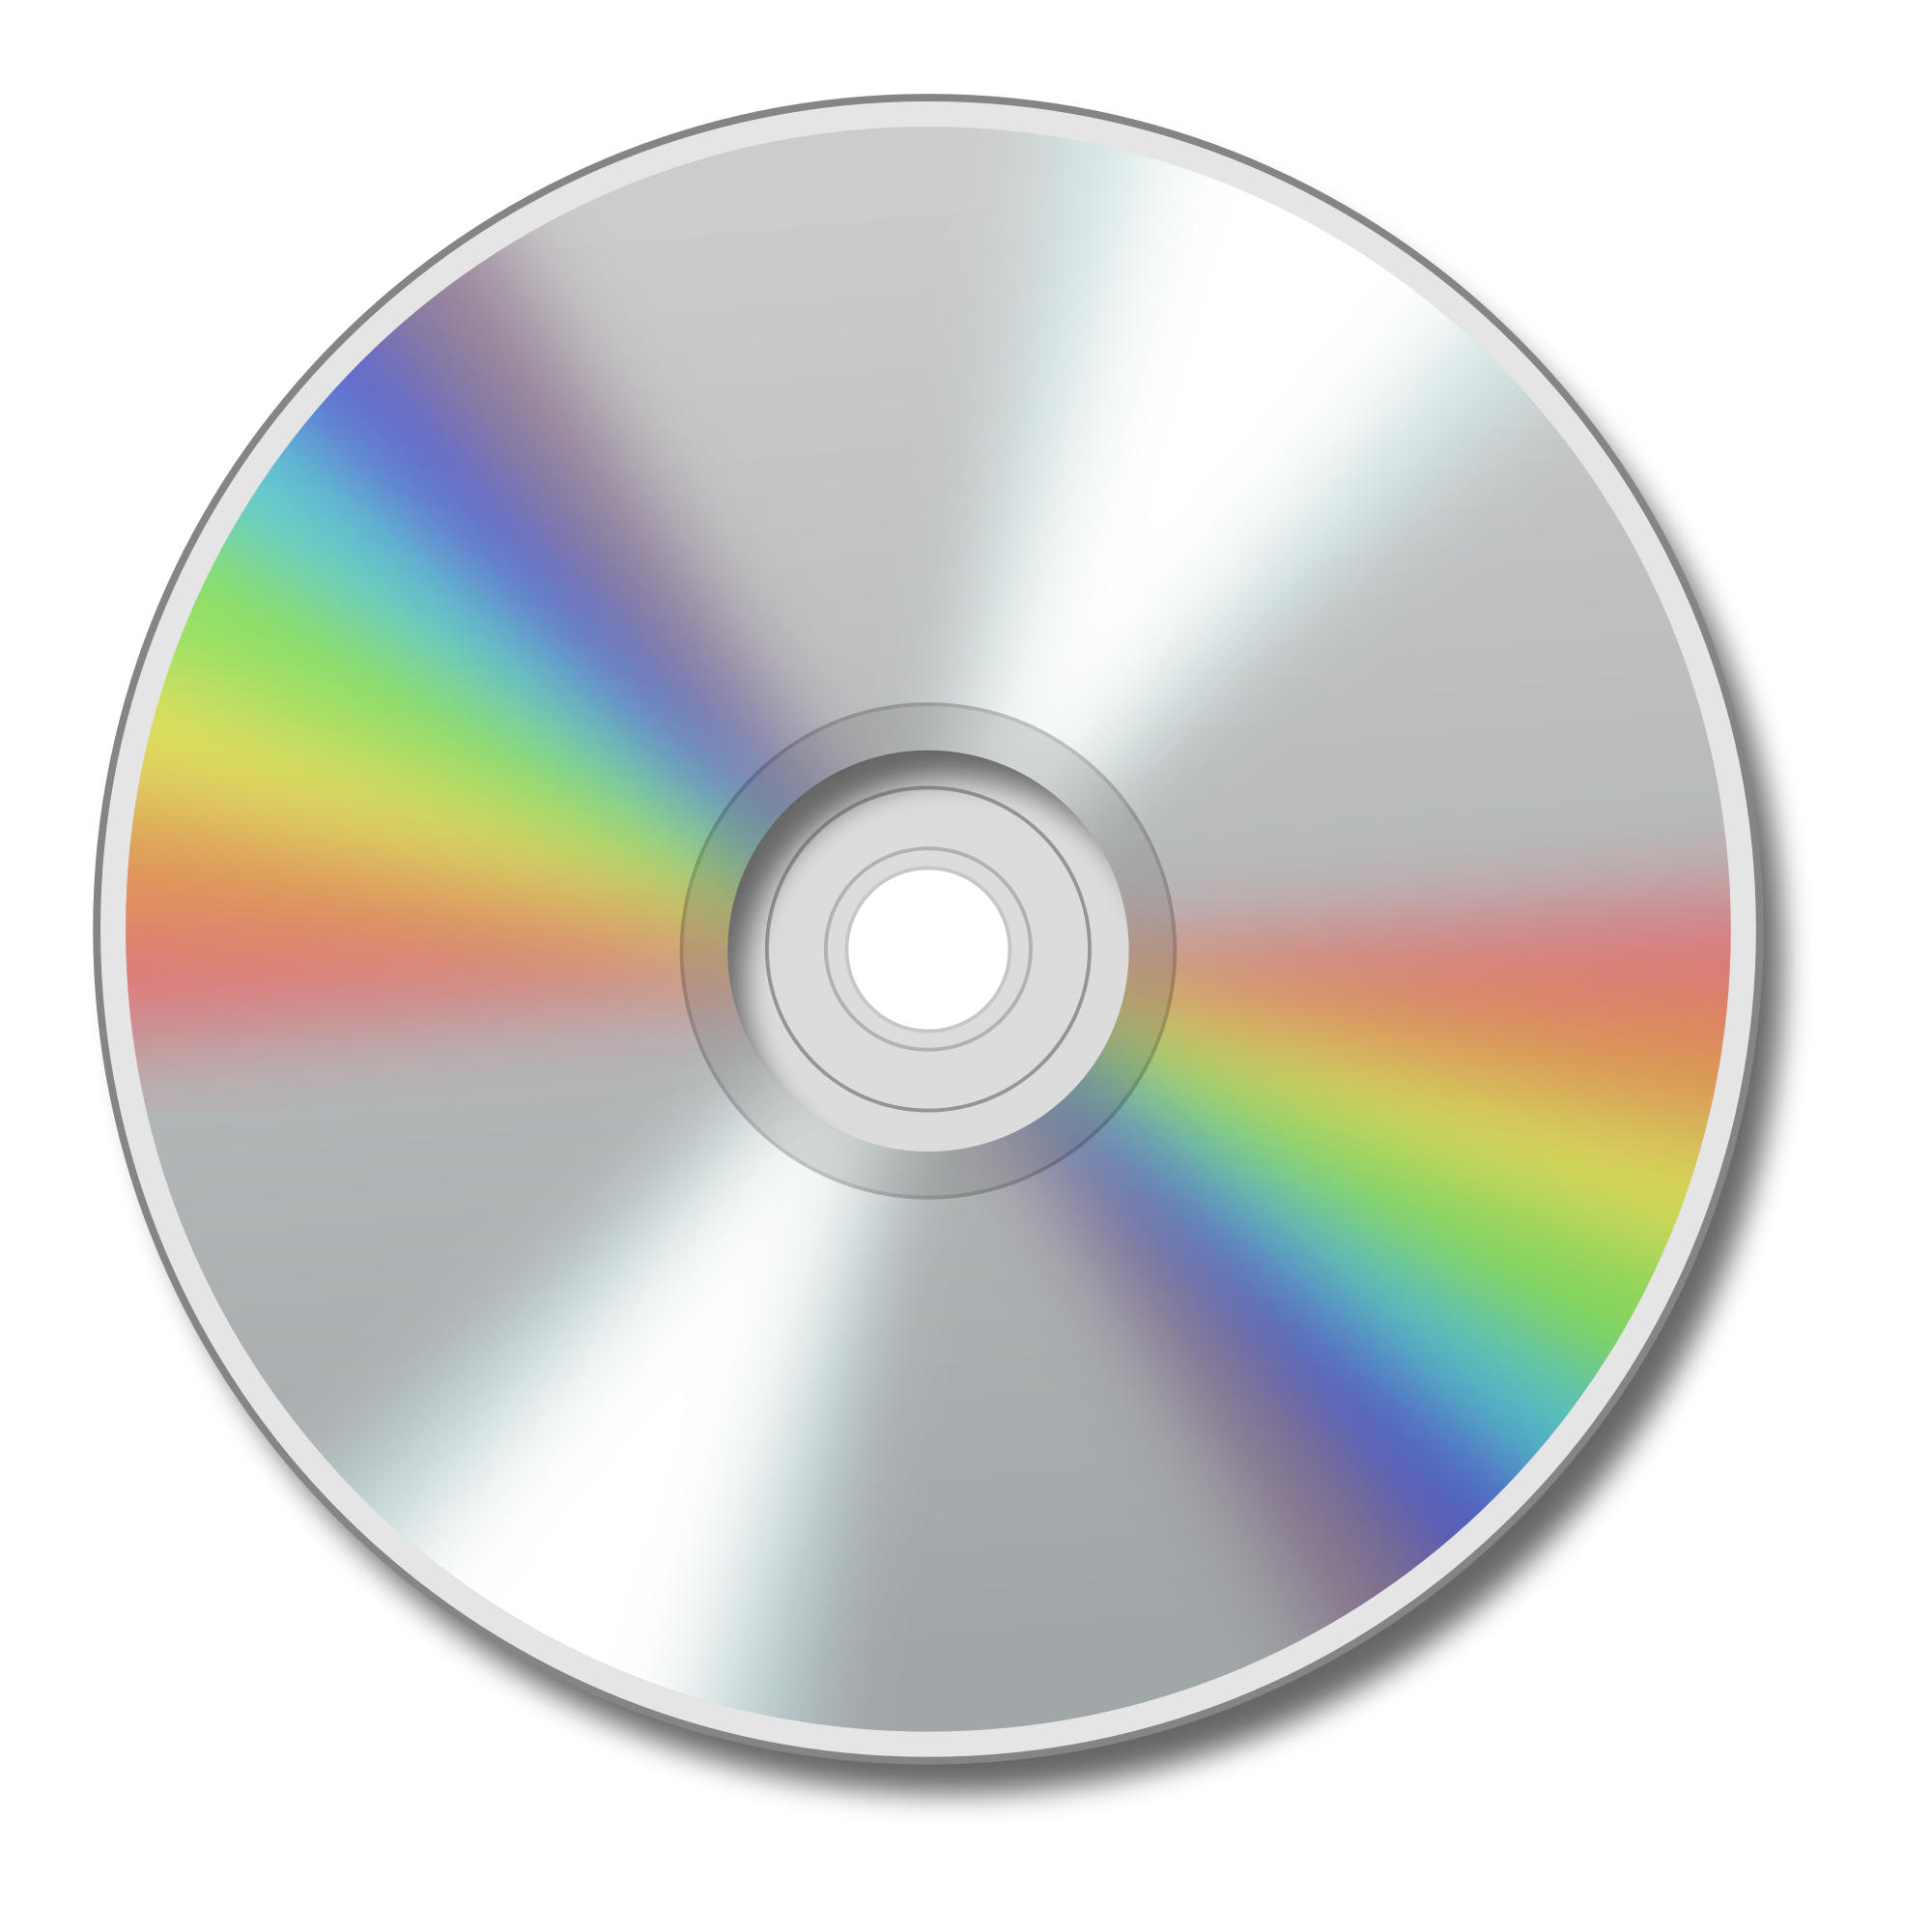 Cds Png, png collections at sccpre.cat.